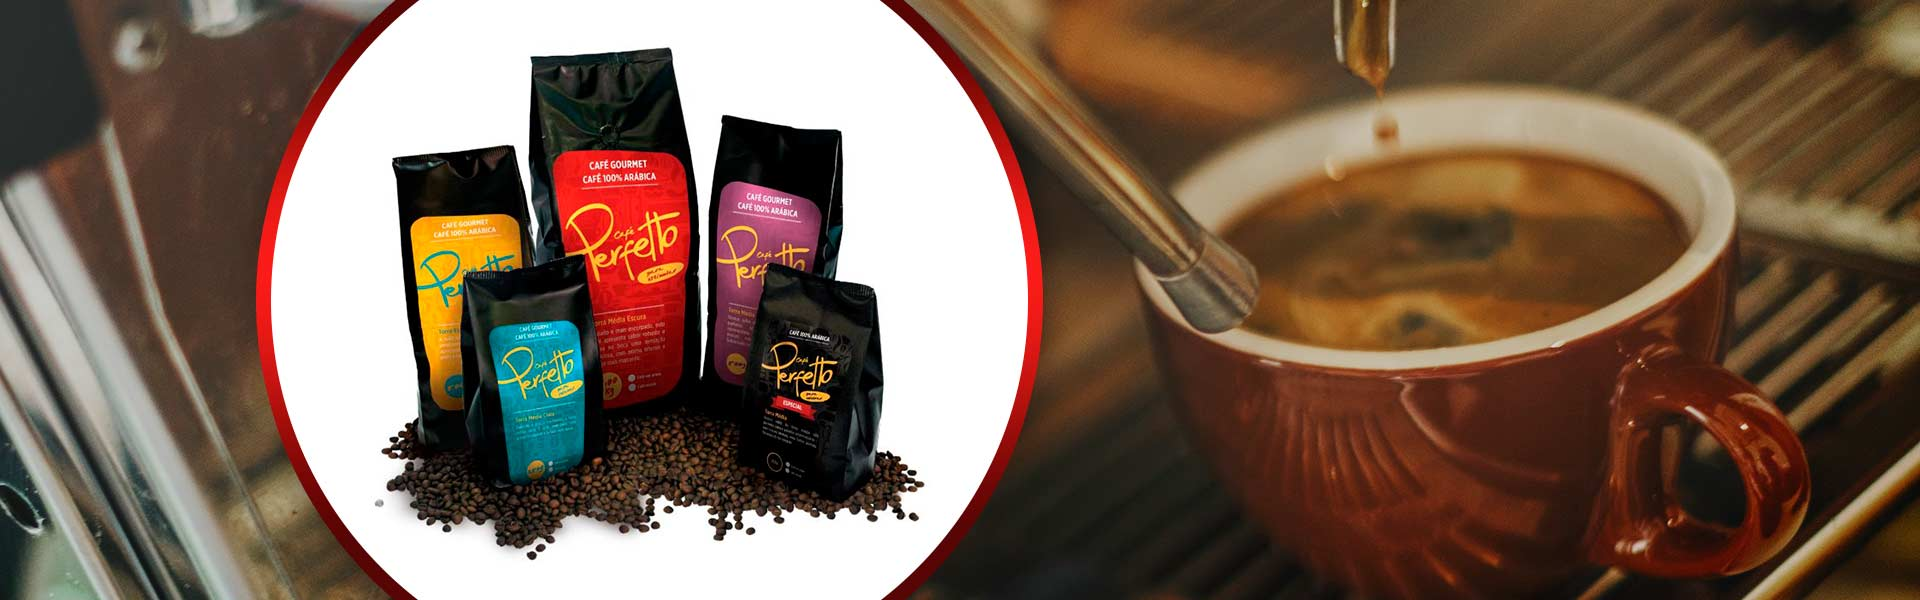 banner-home-cafe-perfetto